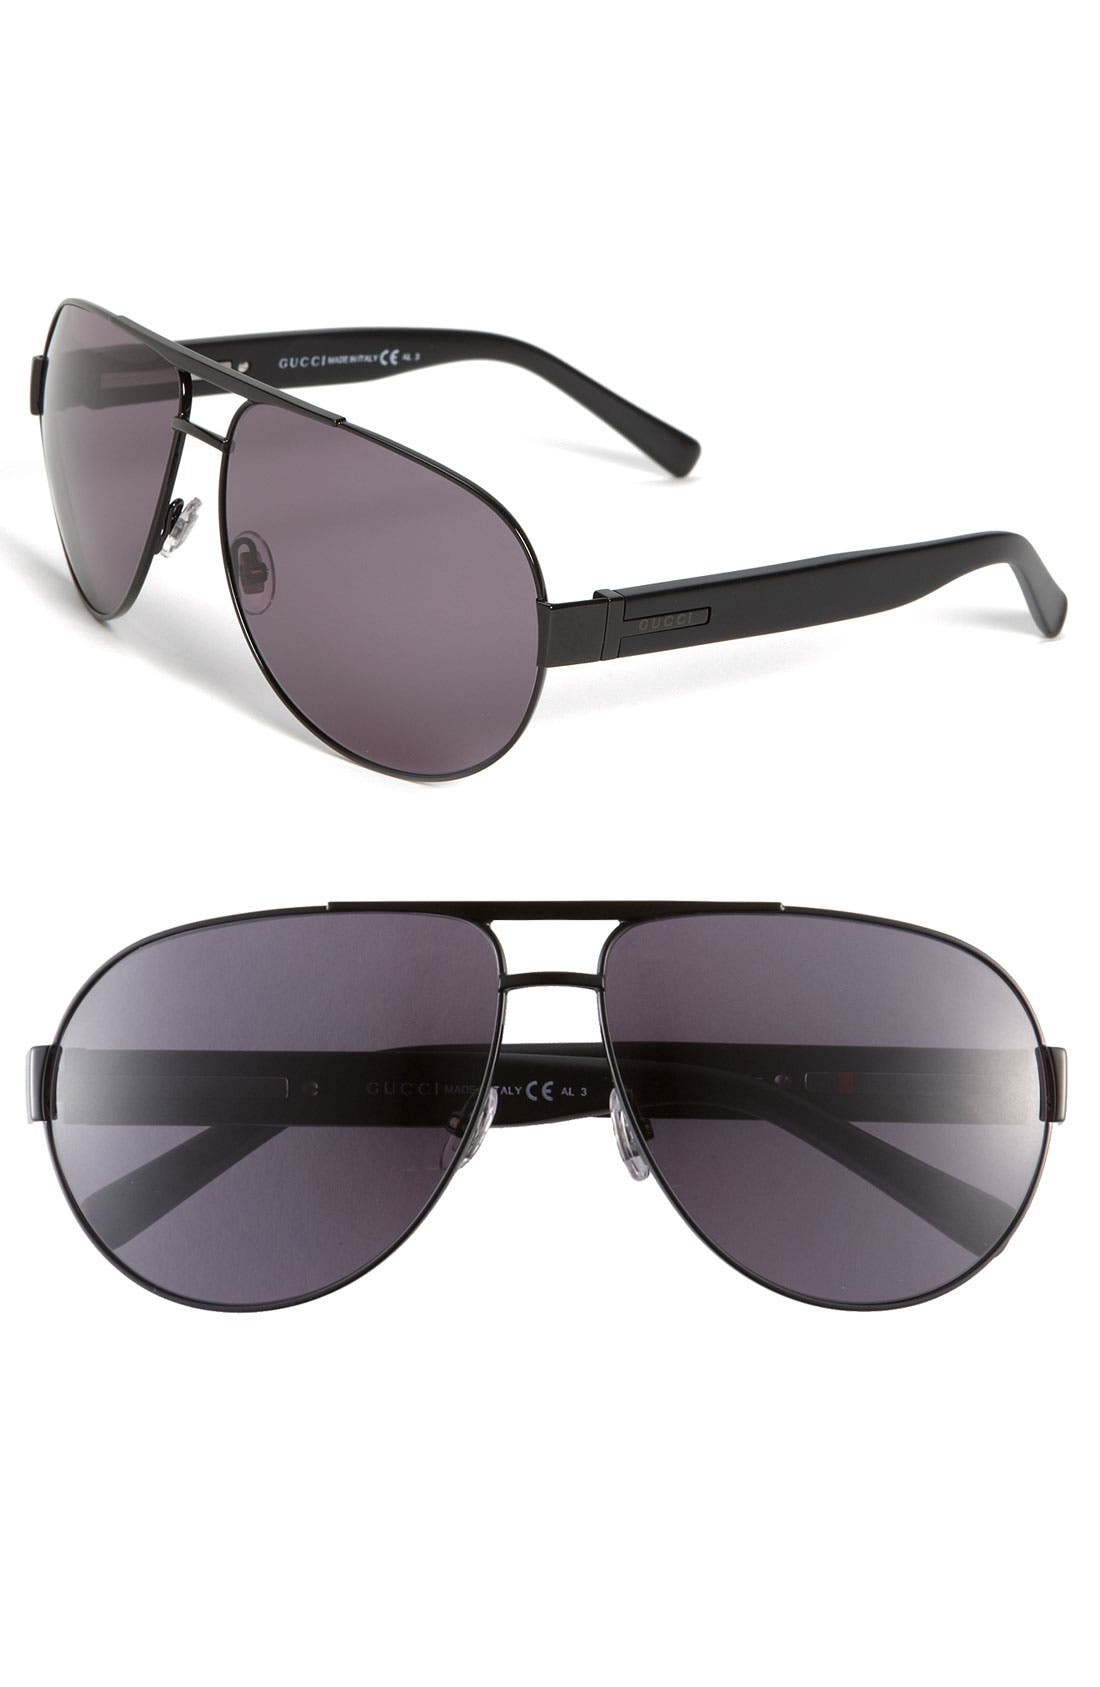 Main Image - Gucci Stainless Steel Aviator Sunglasses